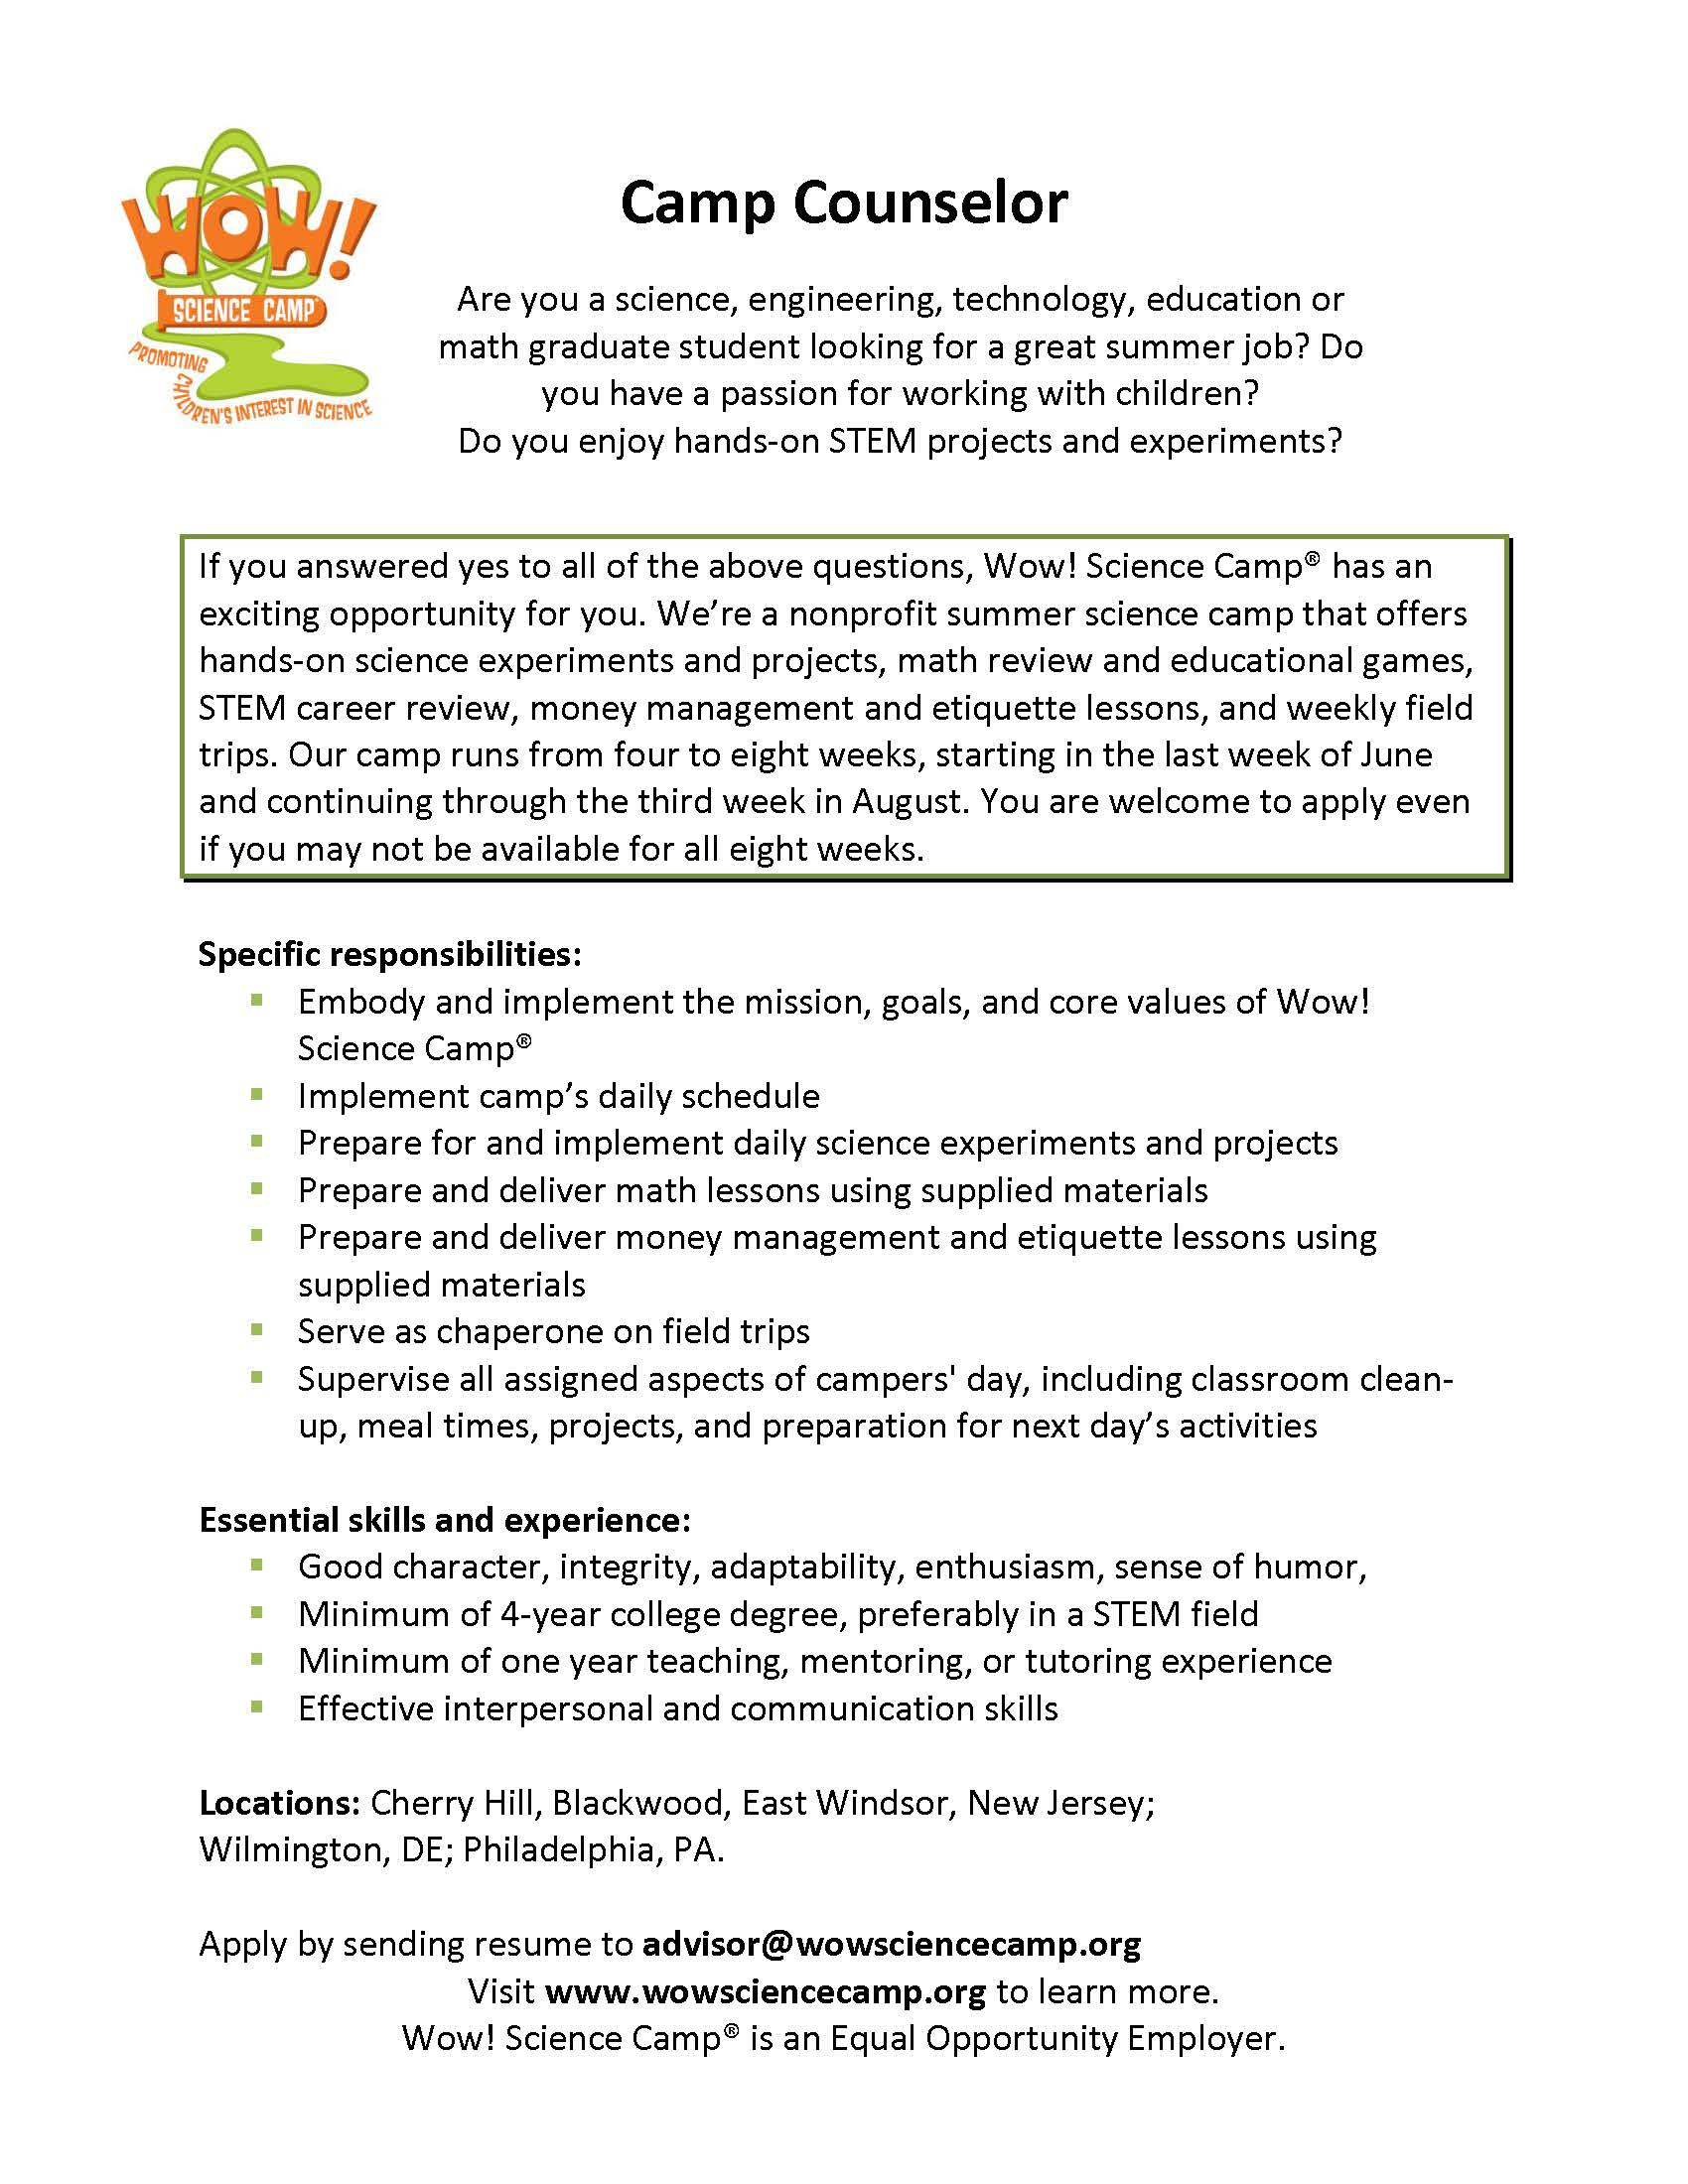 counselor talk of townsend description for resume study abroad experience on example Resume Description Of Camp Counselor For Resume